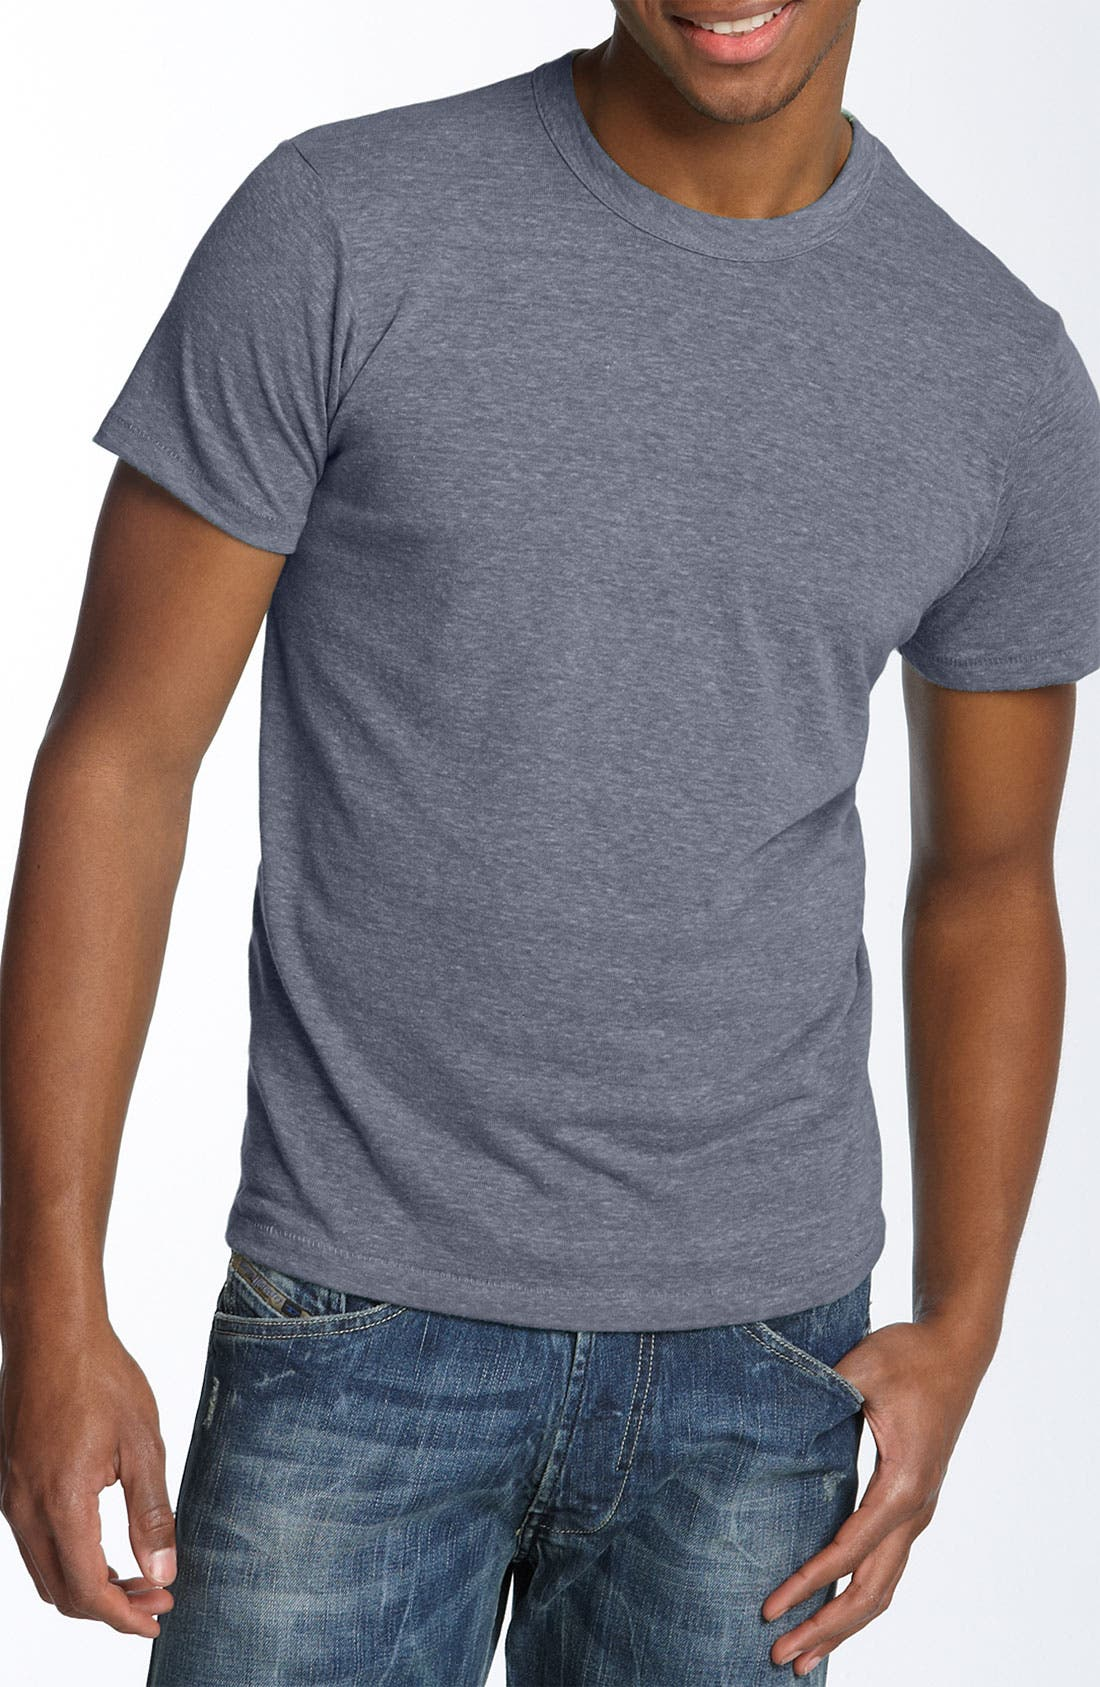 Main Image - Alternative Heathered Trim Fit Crewneck T-Shirt